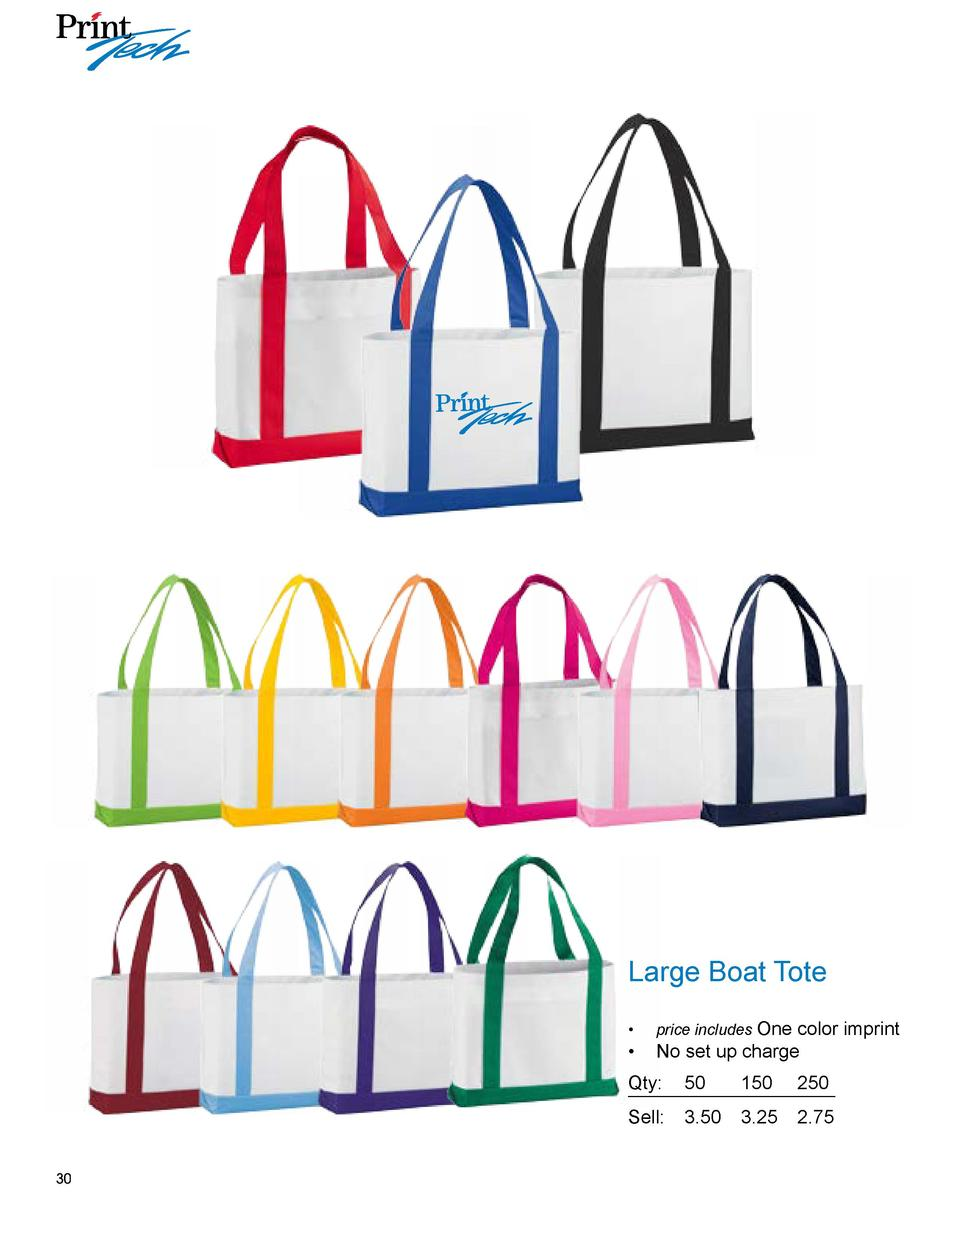 Large Boat Tote      price includes One color imprint      No set up charge  Qty  50  150 250 Sell   3.50 3.25 2.75 30